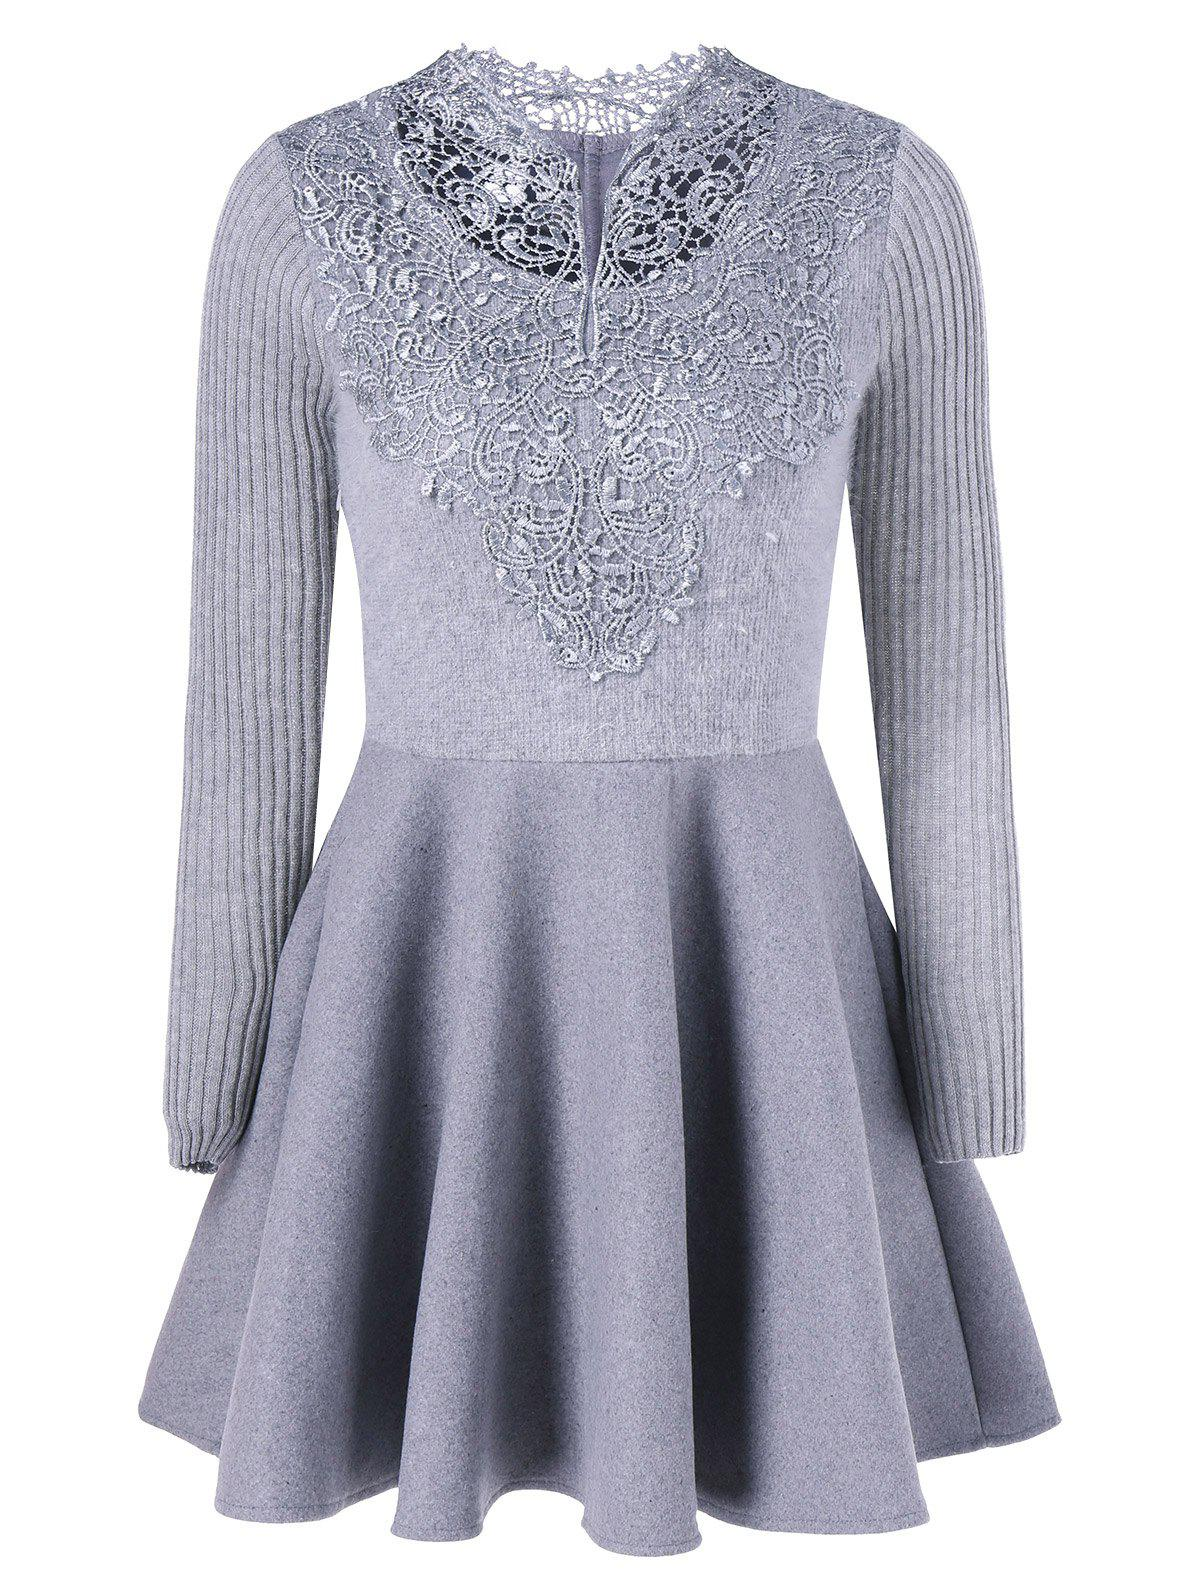 Fancy Lace Insert Knit Fit And Flare Dress